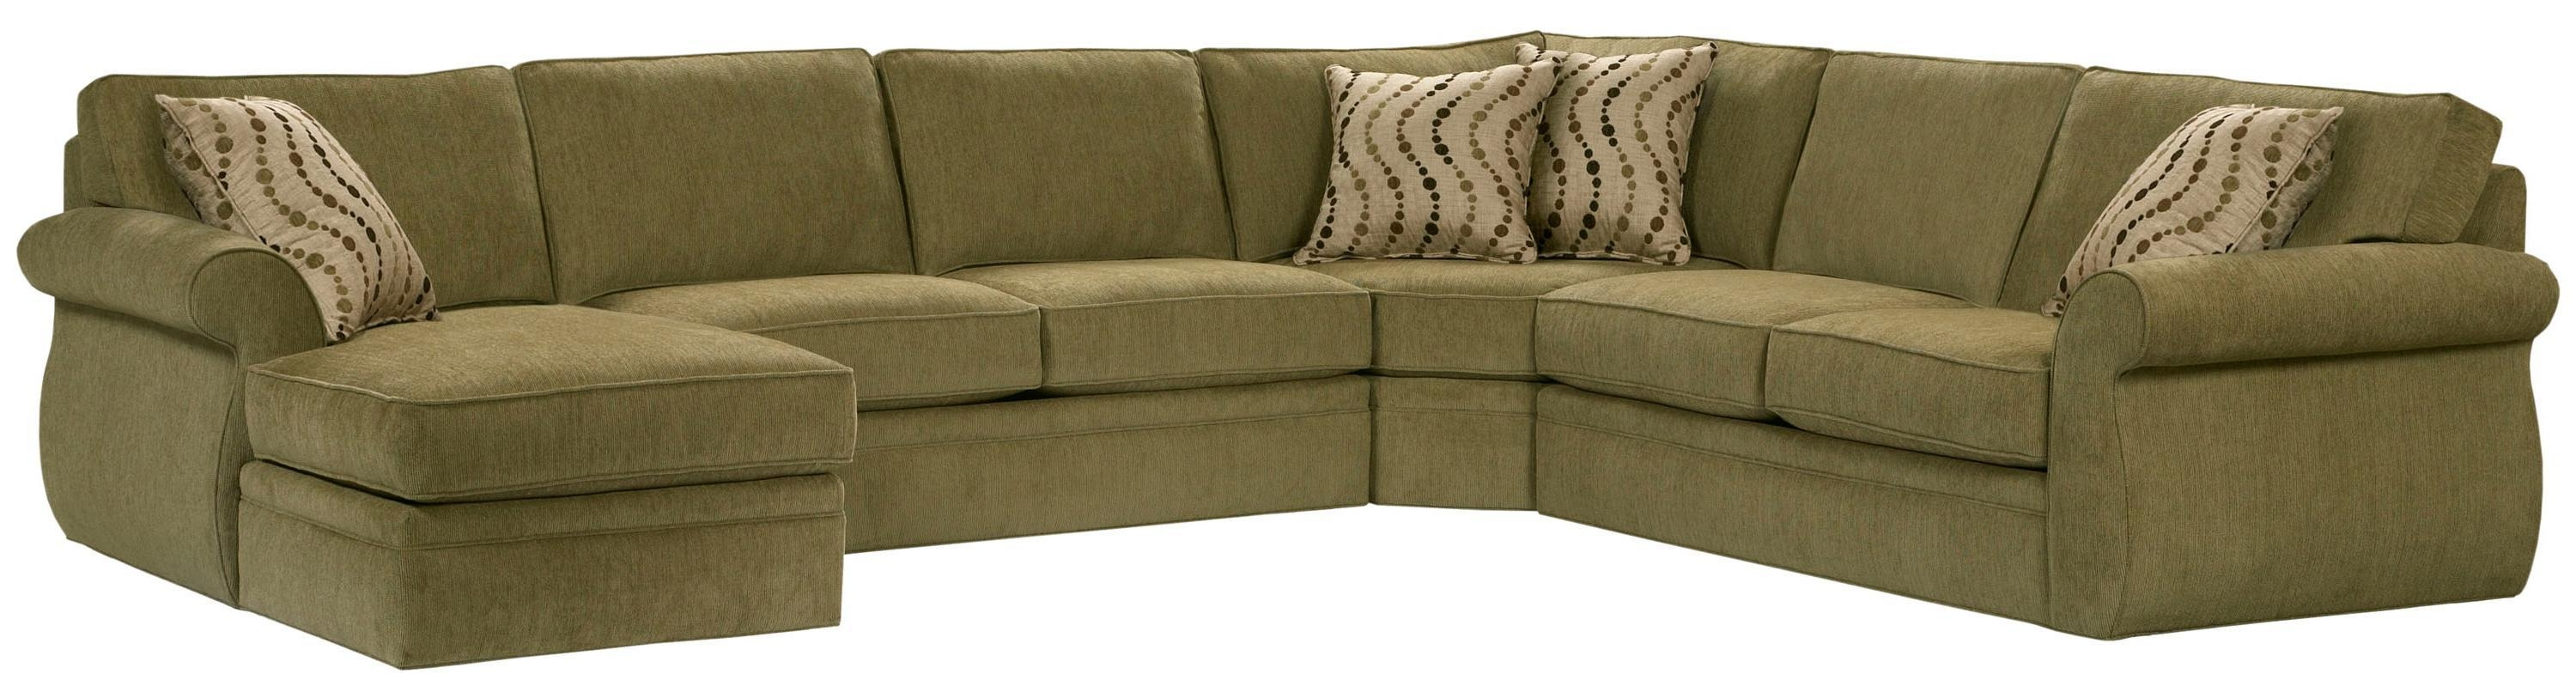 broyhill sleeper sofa rocking nursery 20 inspirations sectional sofas ideas